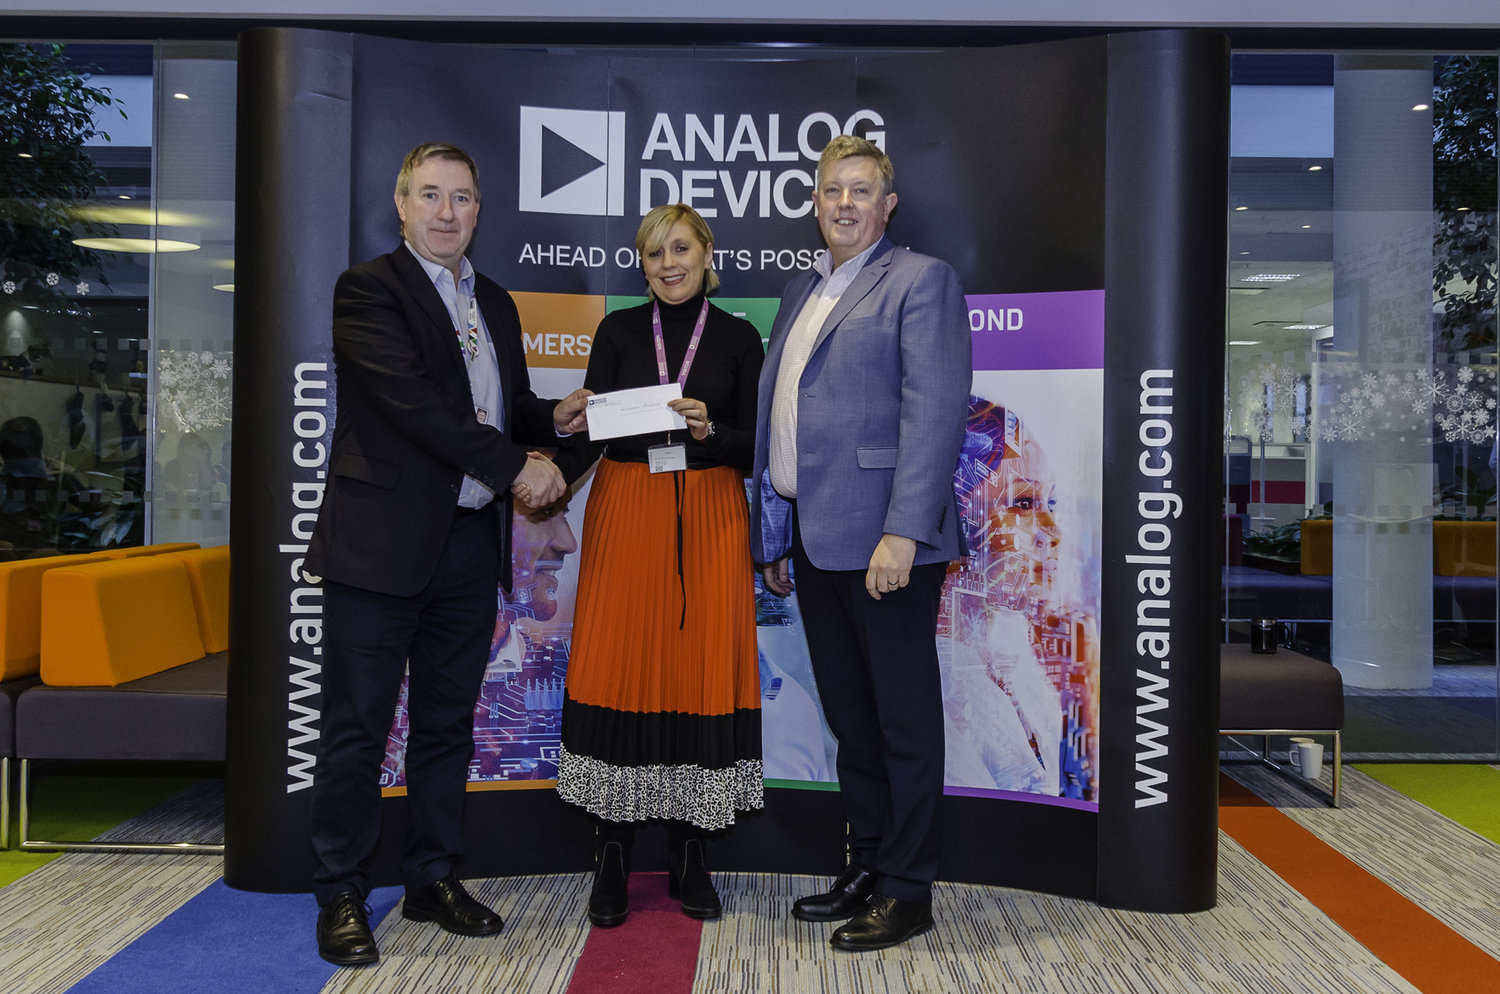 Analog Devices Community Awards